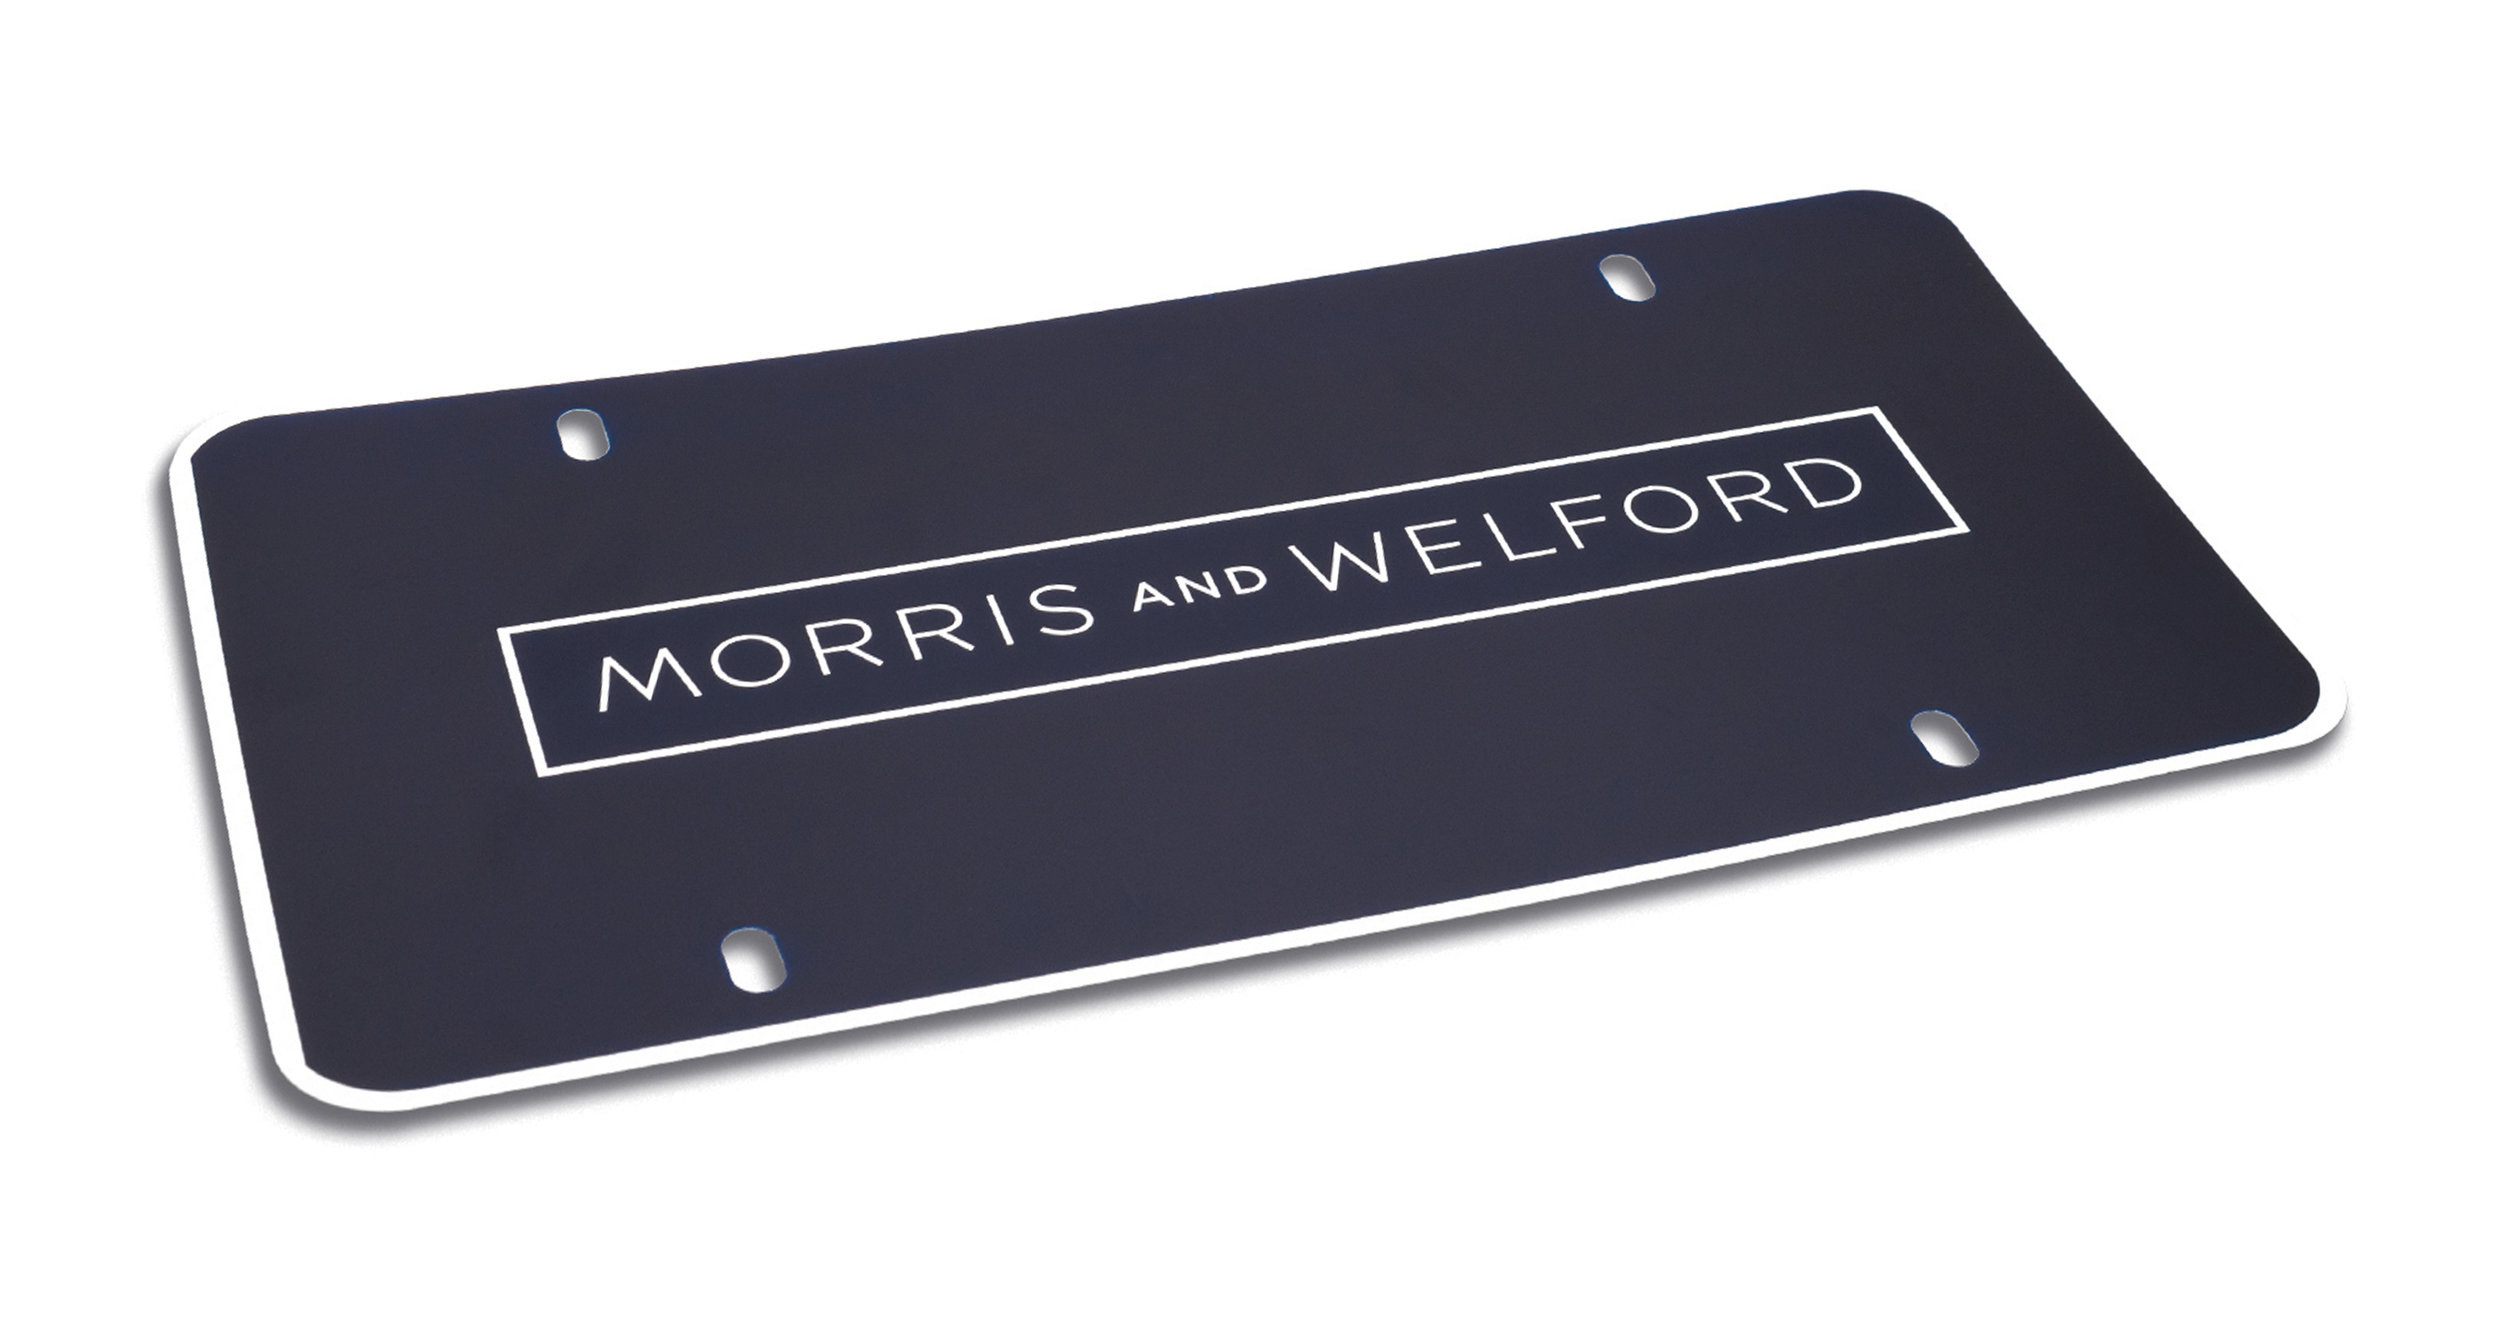 Custom Morris and Welford Polyester Insert Card